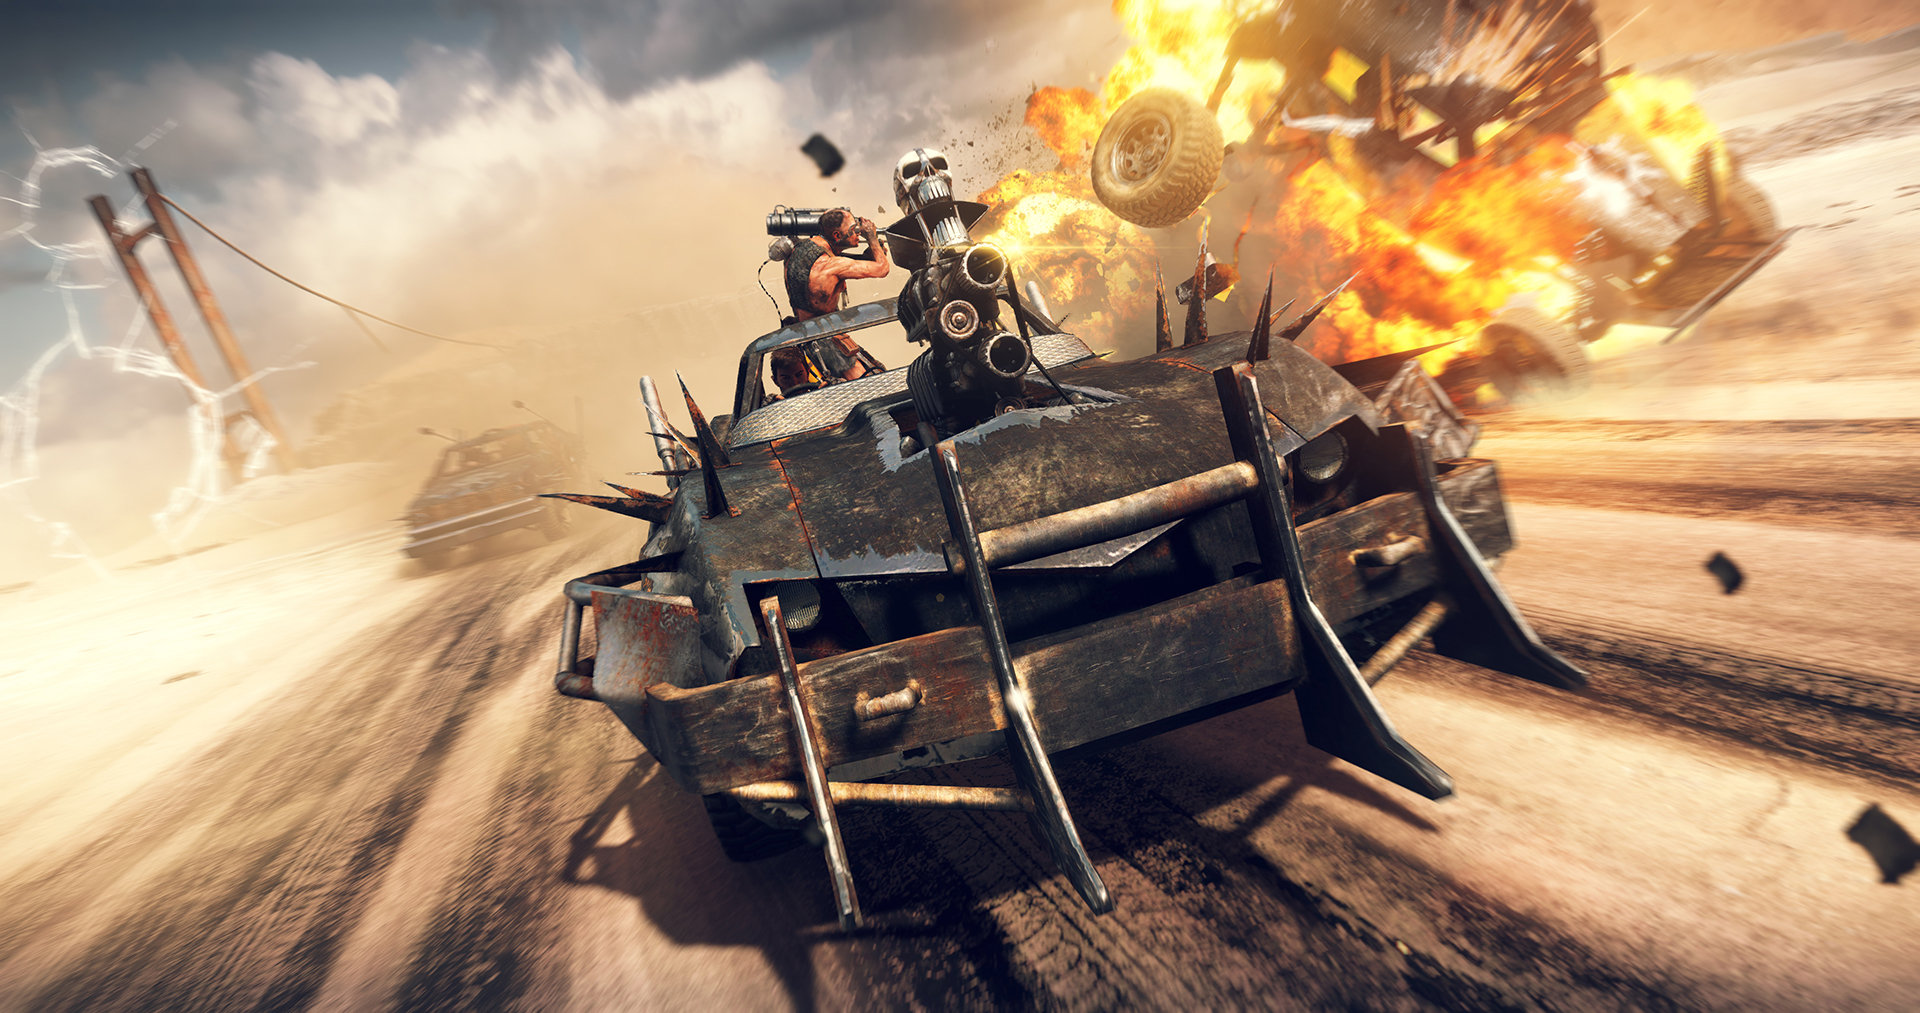 mad-max-screen-13-ps4-us-23apr15?$MediaC